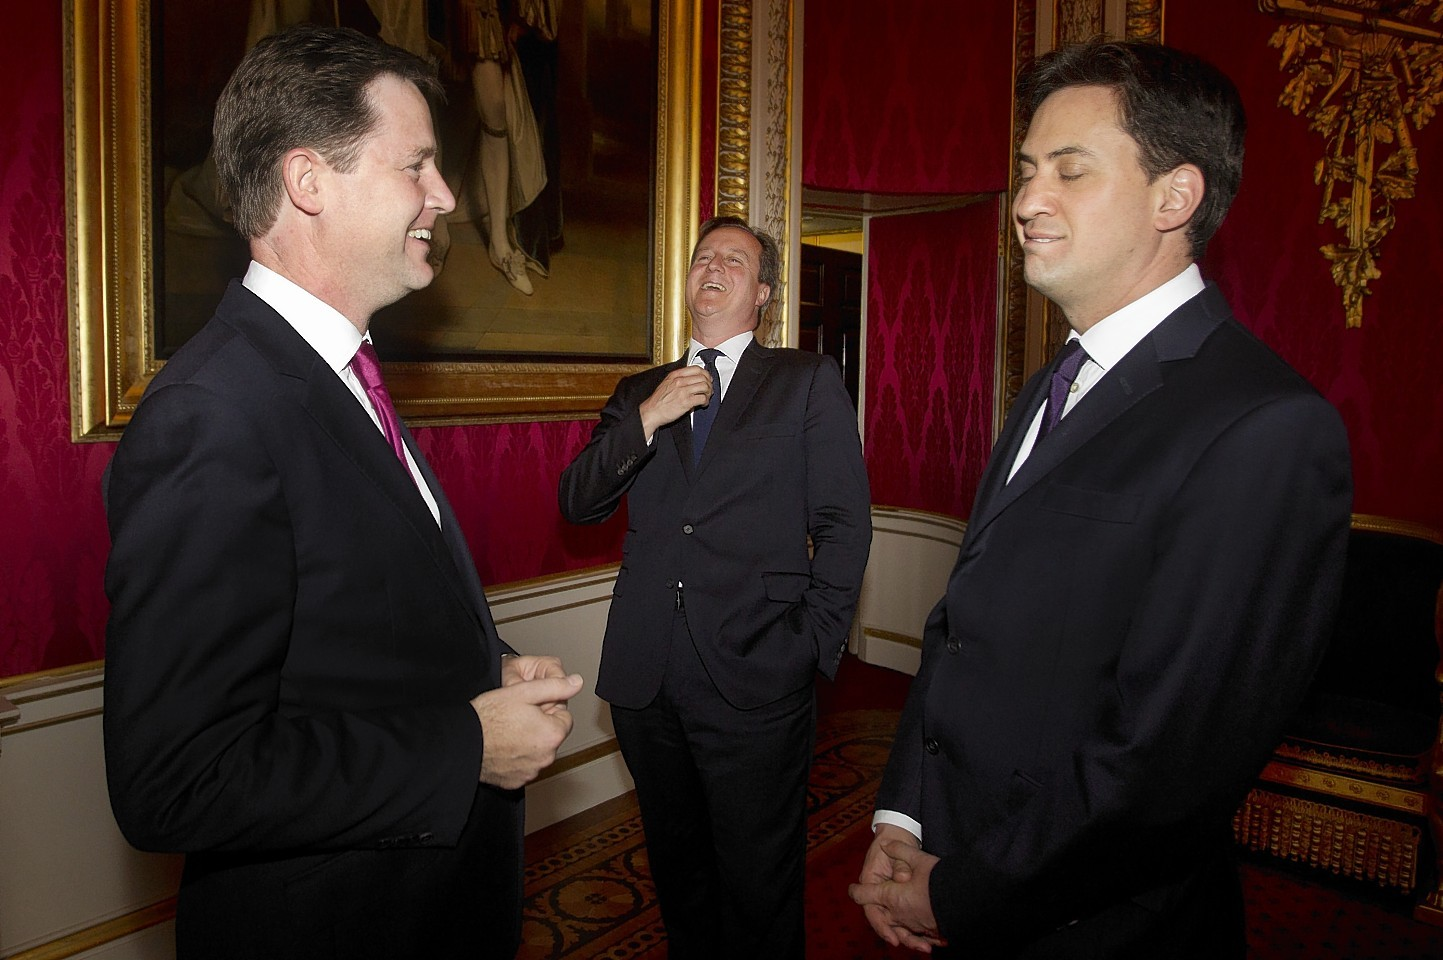 Honestly, it could all go smoothly, no laughing you three!